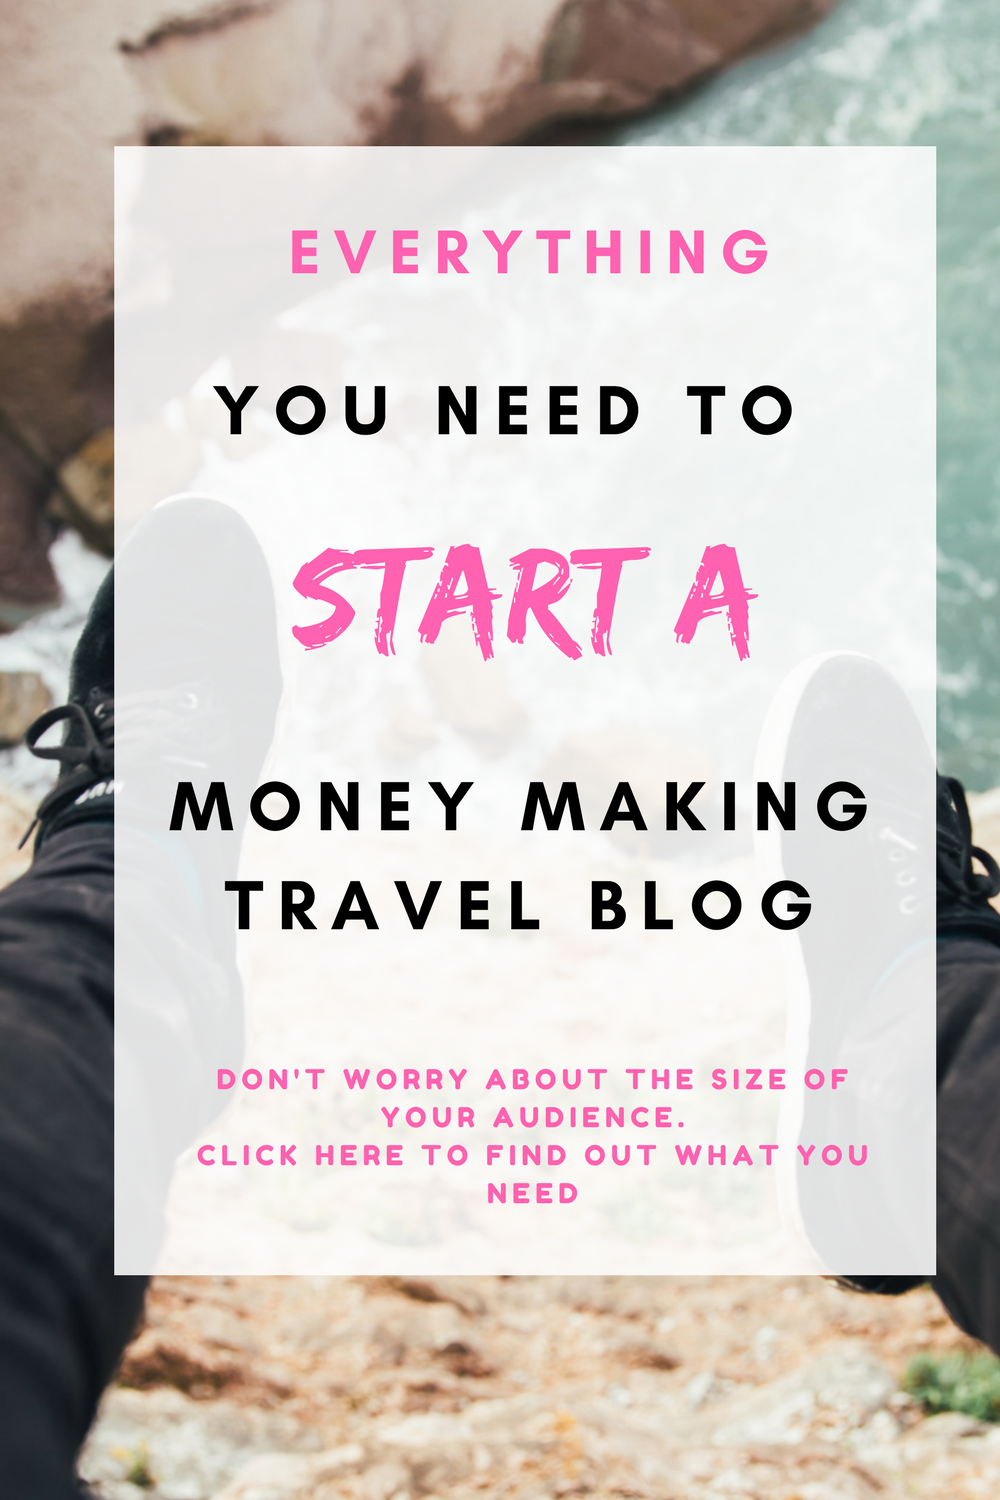 Everything you need to start a money making travel blog. You don't need a huge following to earn money blogging